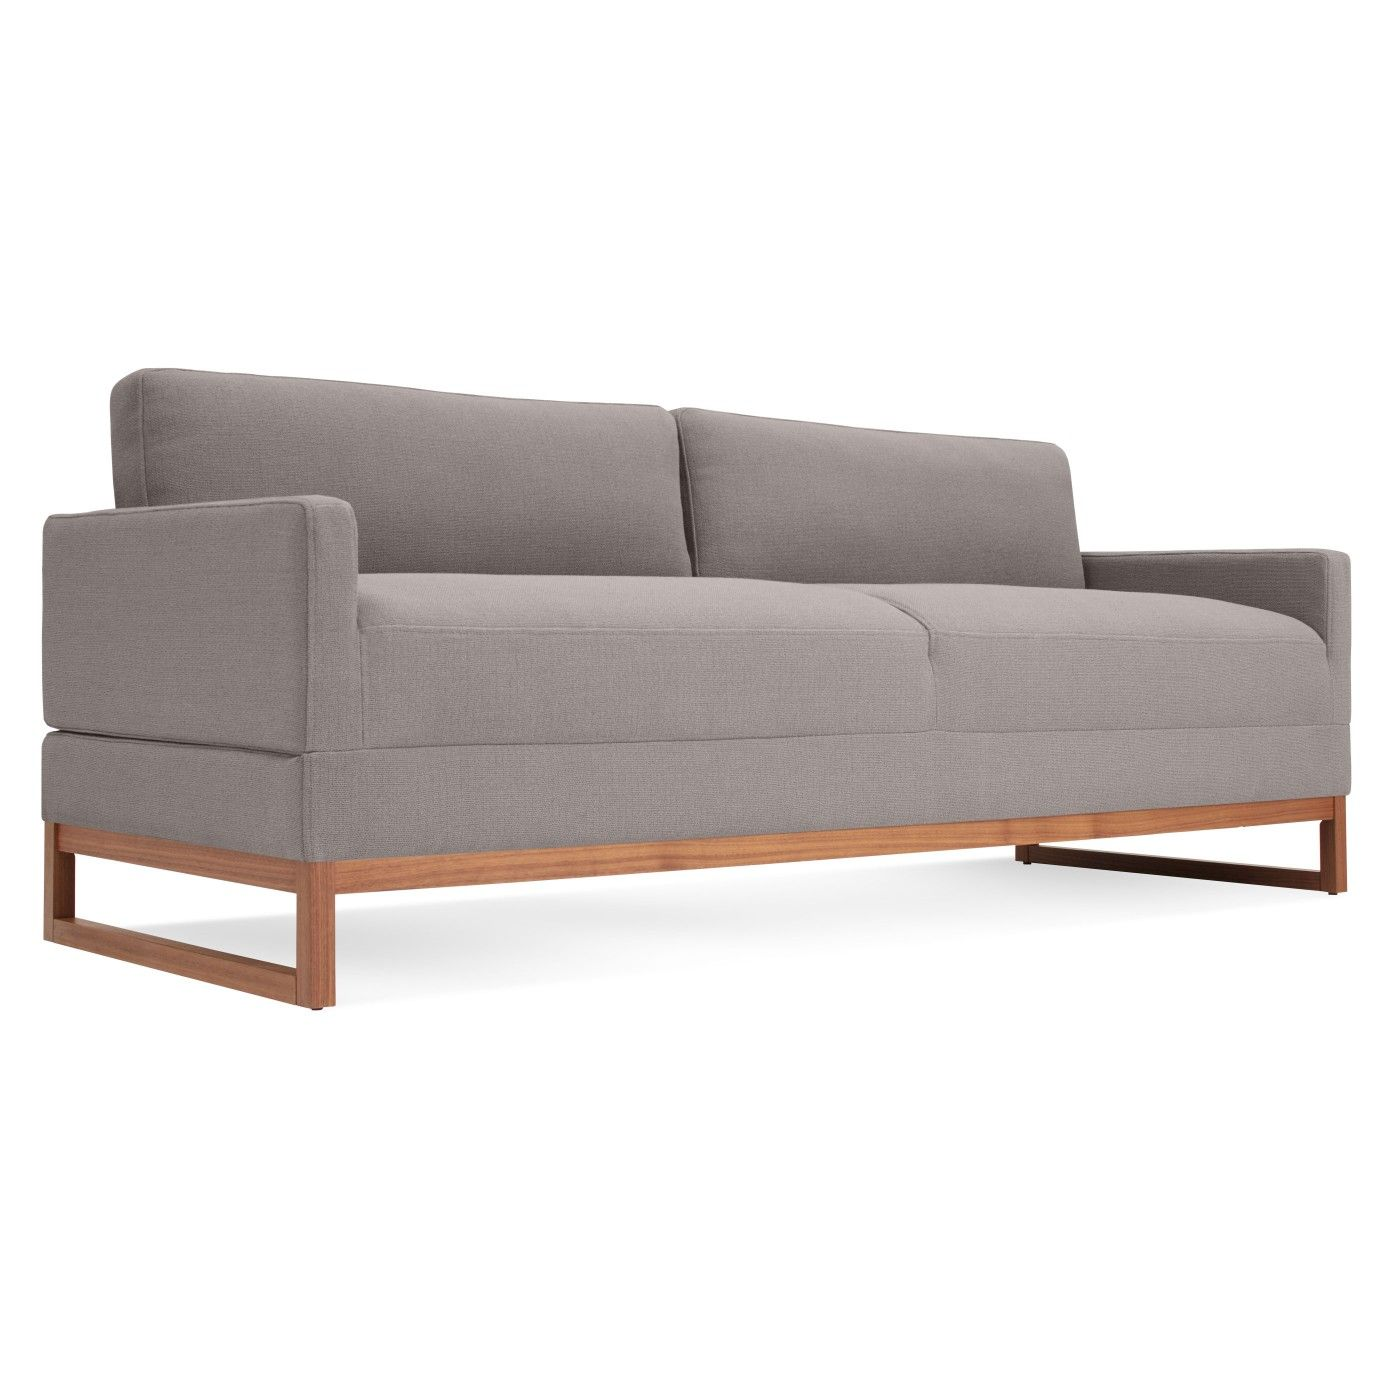 Diplomat 80 Sleeper Sofa With Images Modern Sleeper Sofa Sleeper Sofa Sofa